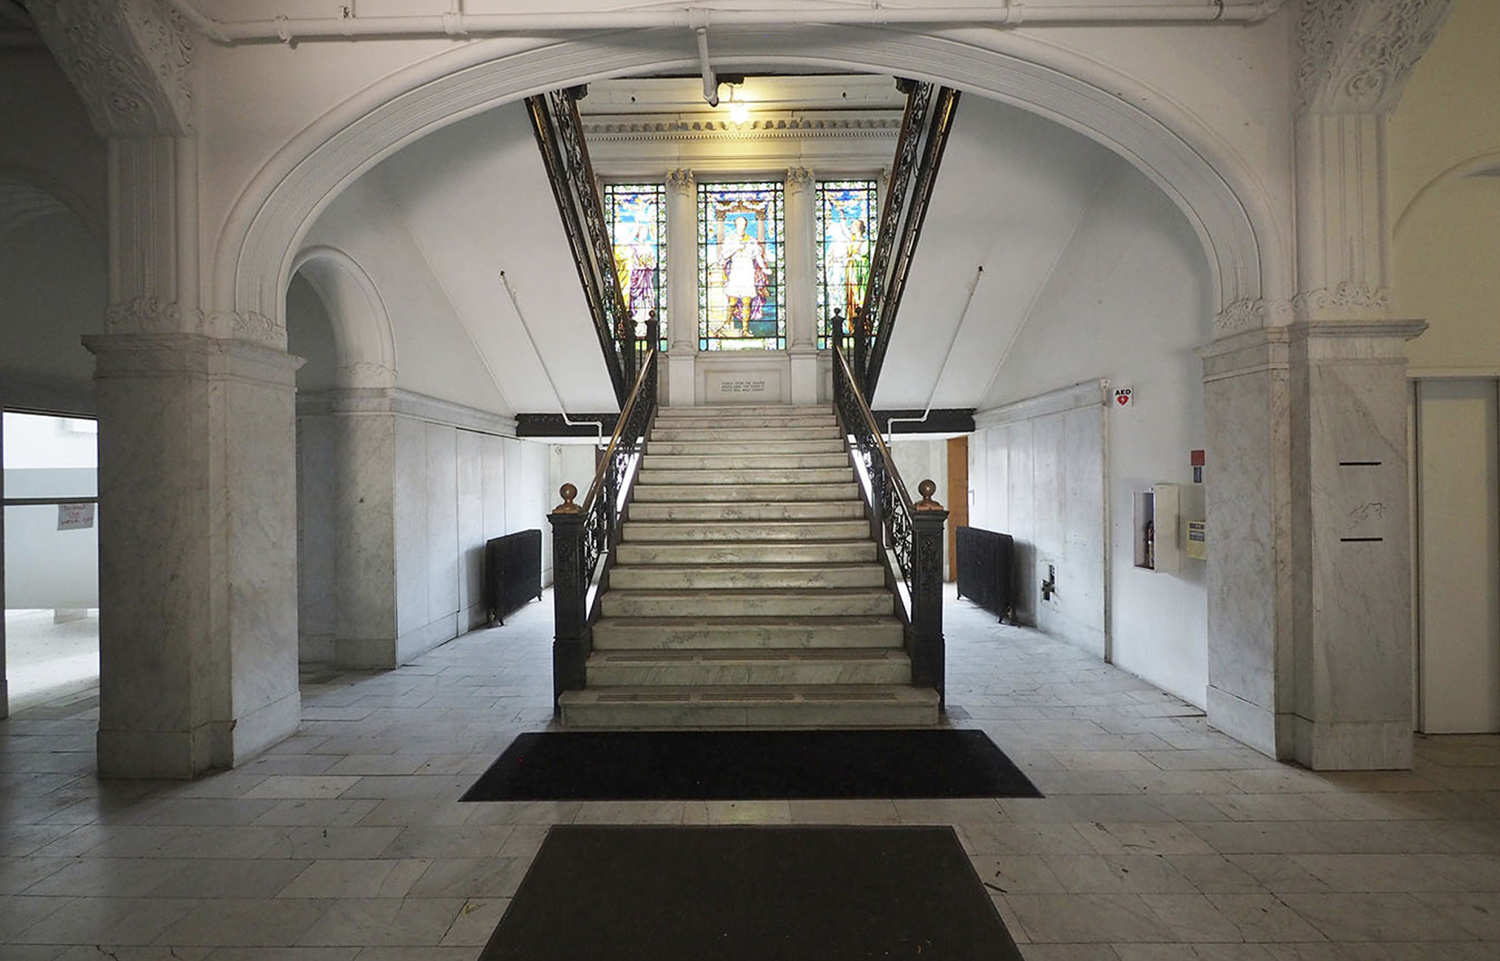 Interior of Armour Institute Building at 3300 S Federal Street. Image by Pappageorge Haymes